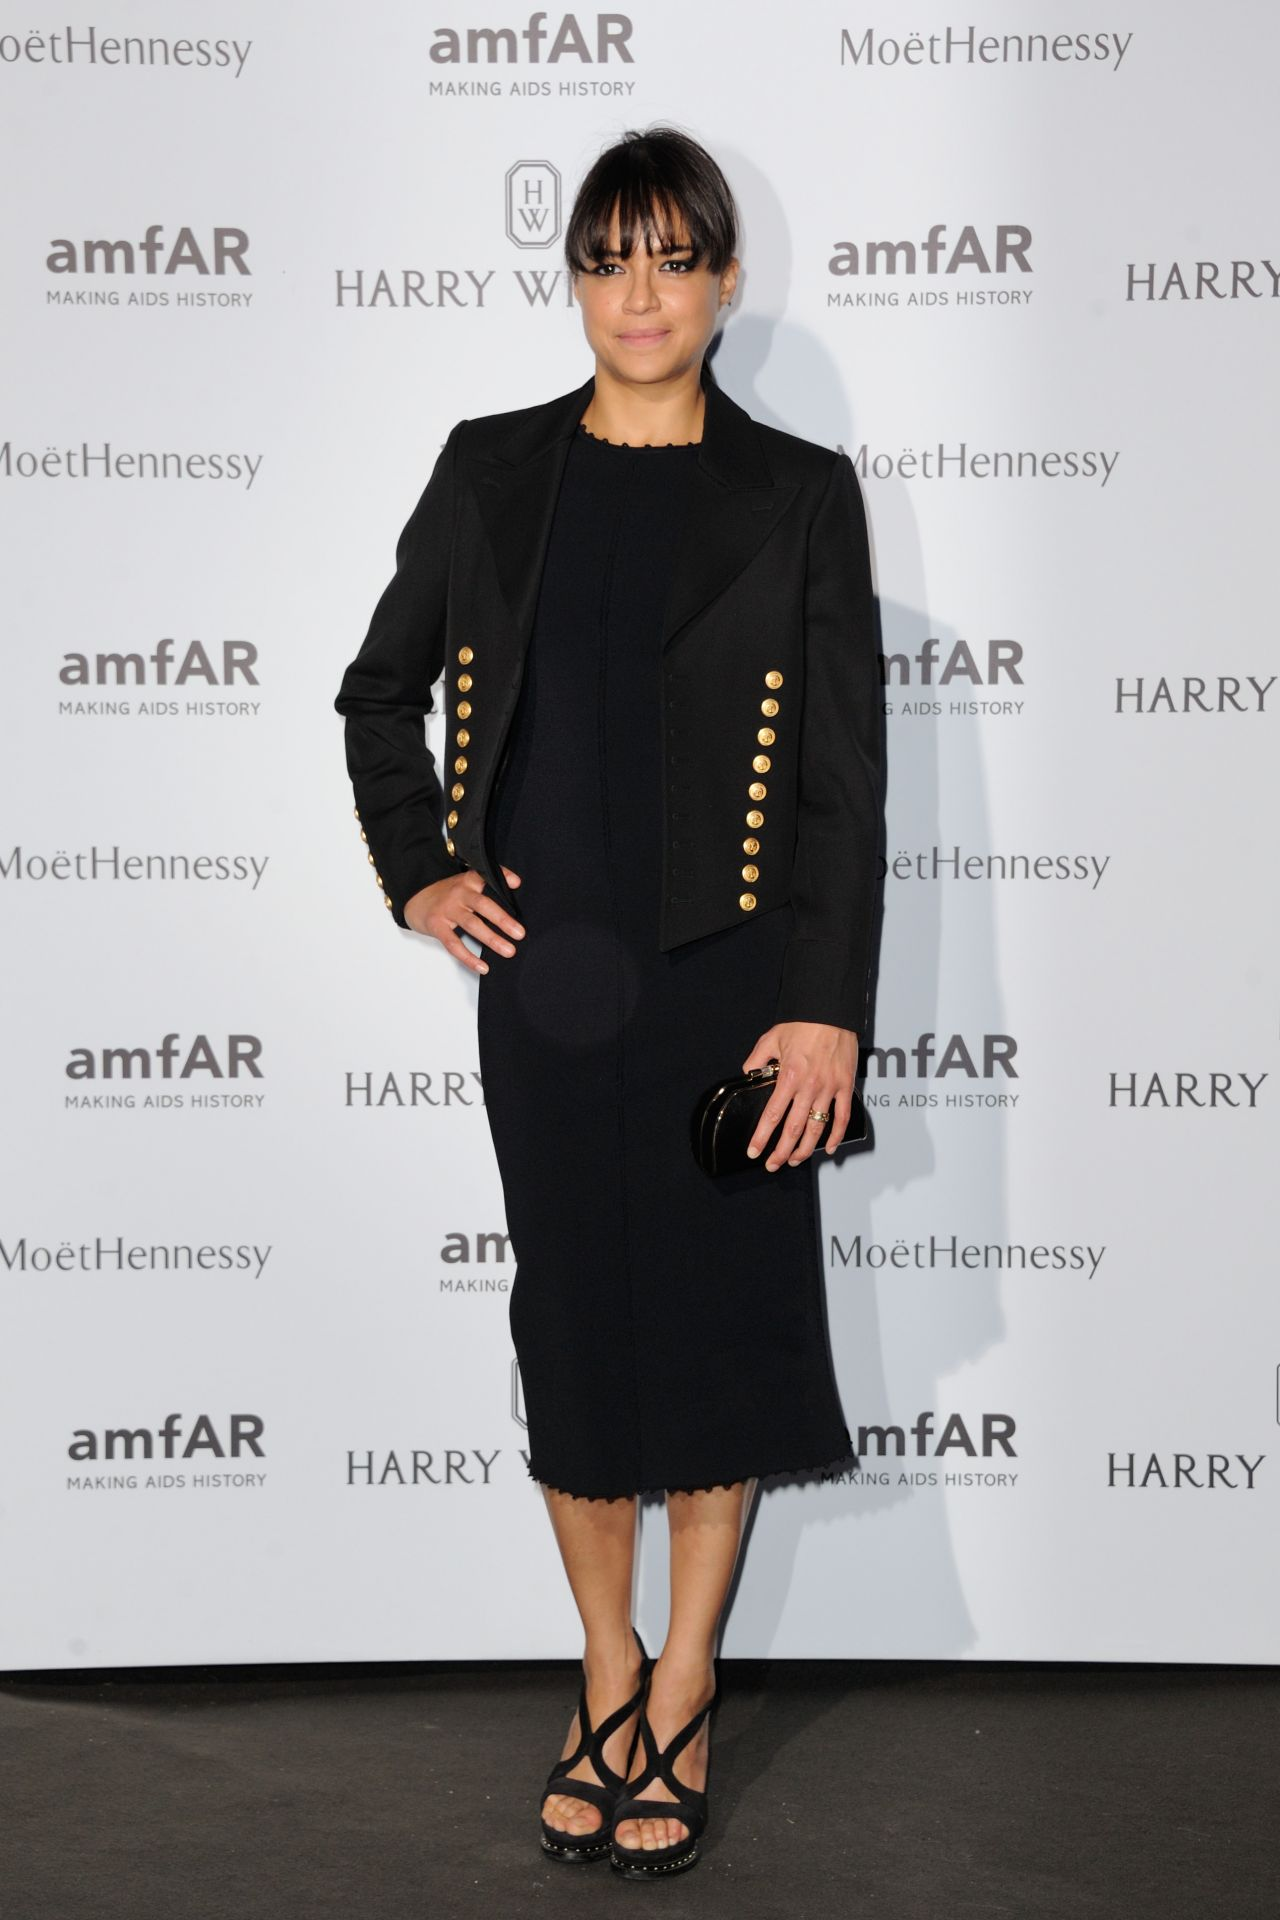 michelle-rodriguez-on-red-carpet-amfar-dinner-in-paris-july-2015_1